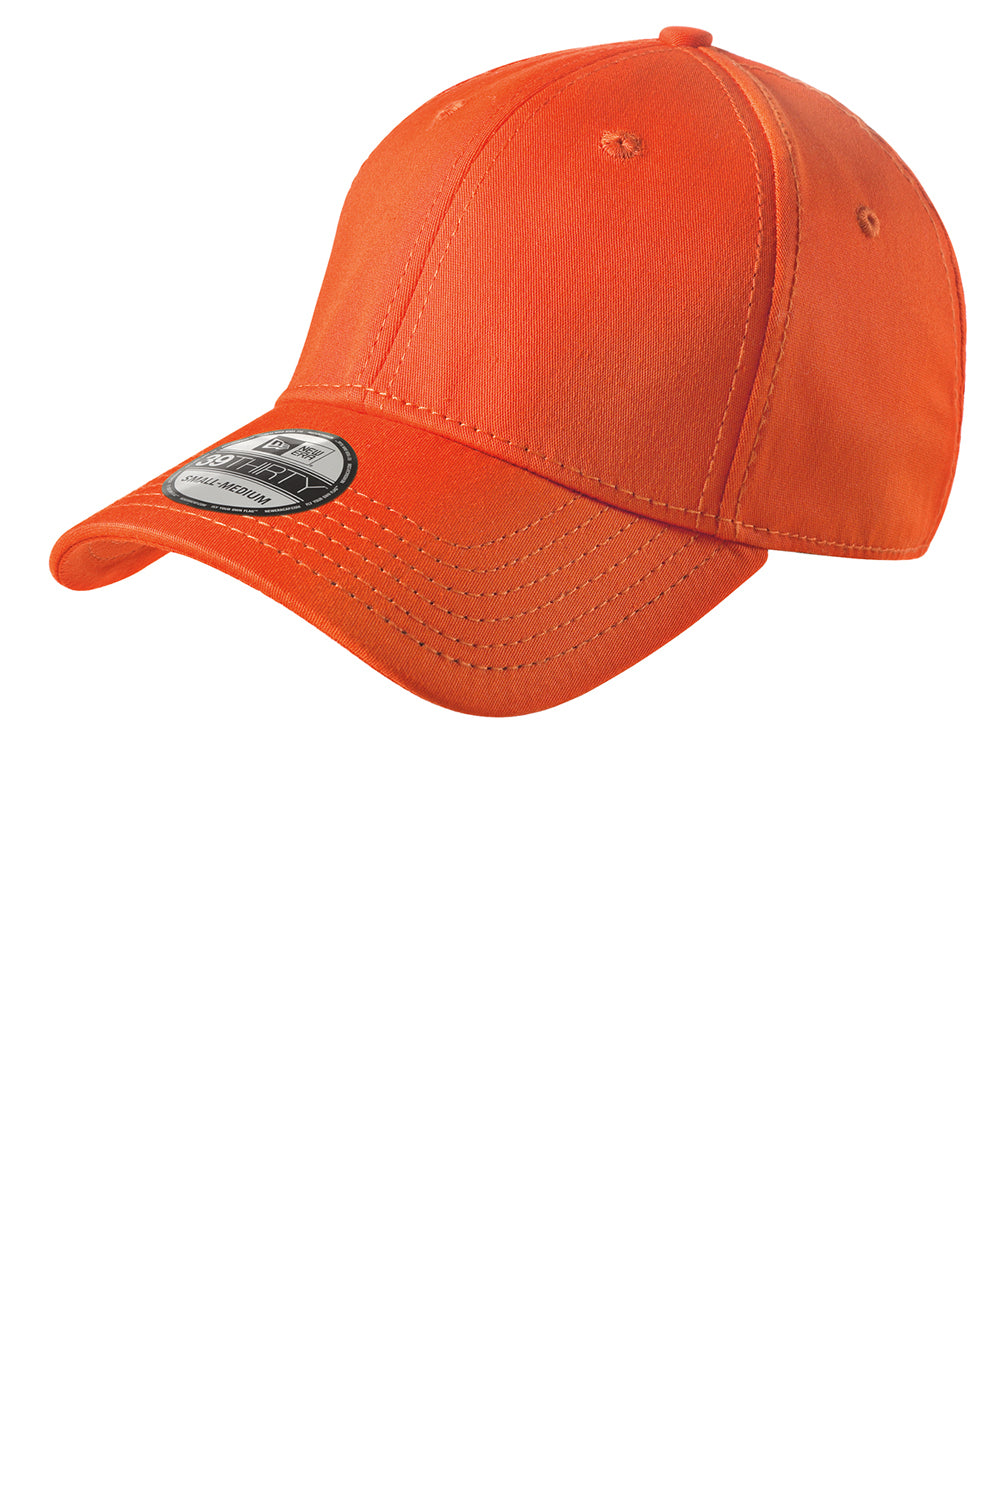 New Era NE1000 Mens Stretch Fit Hat Orange Front